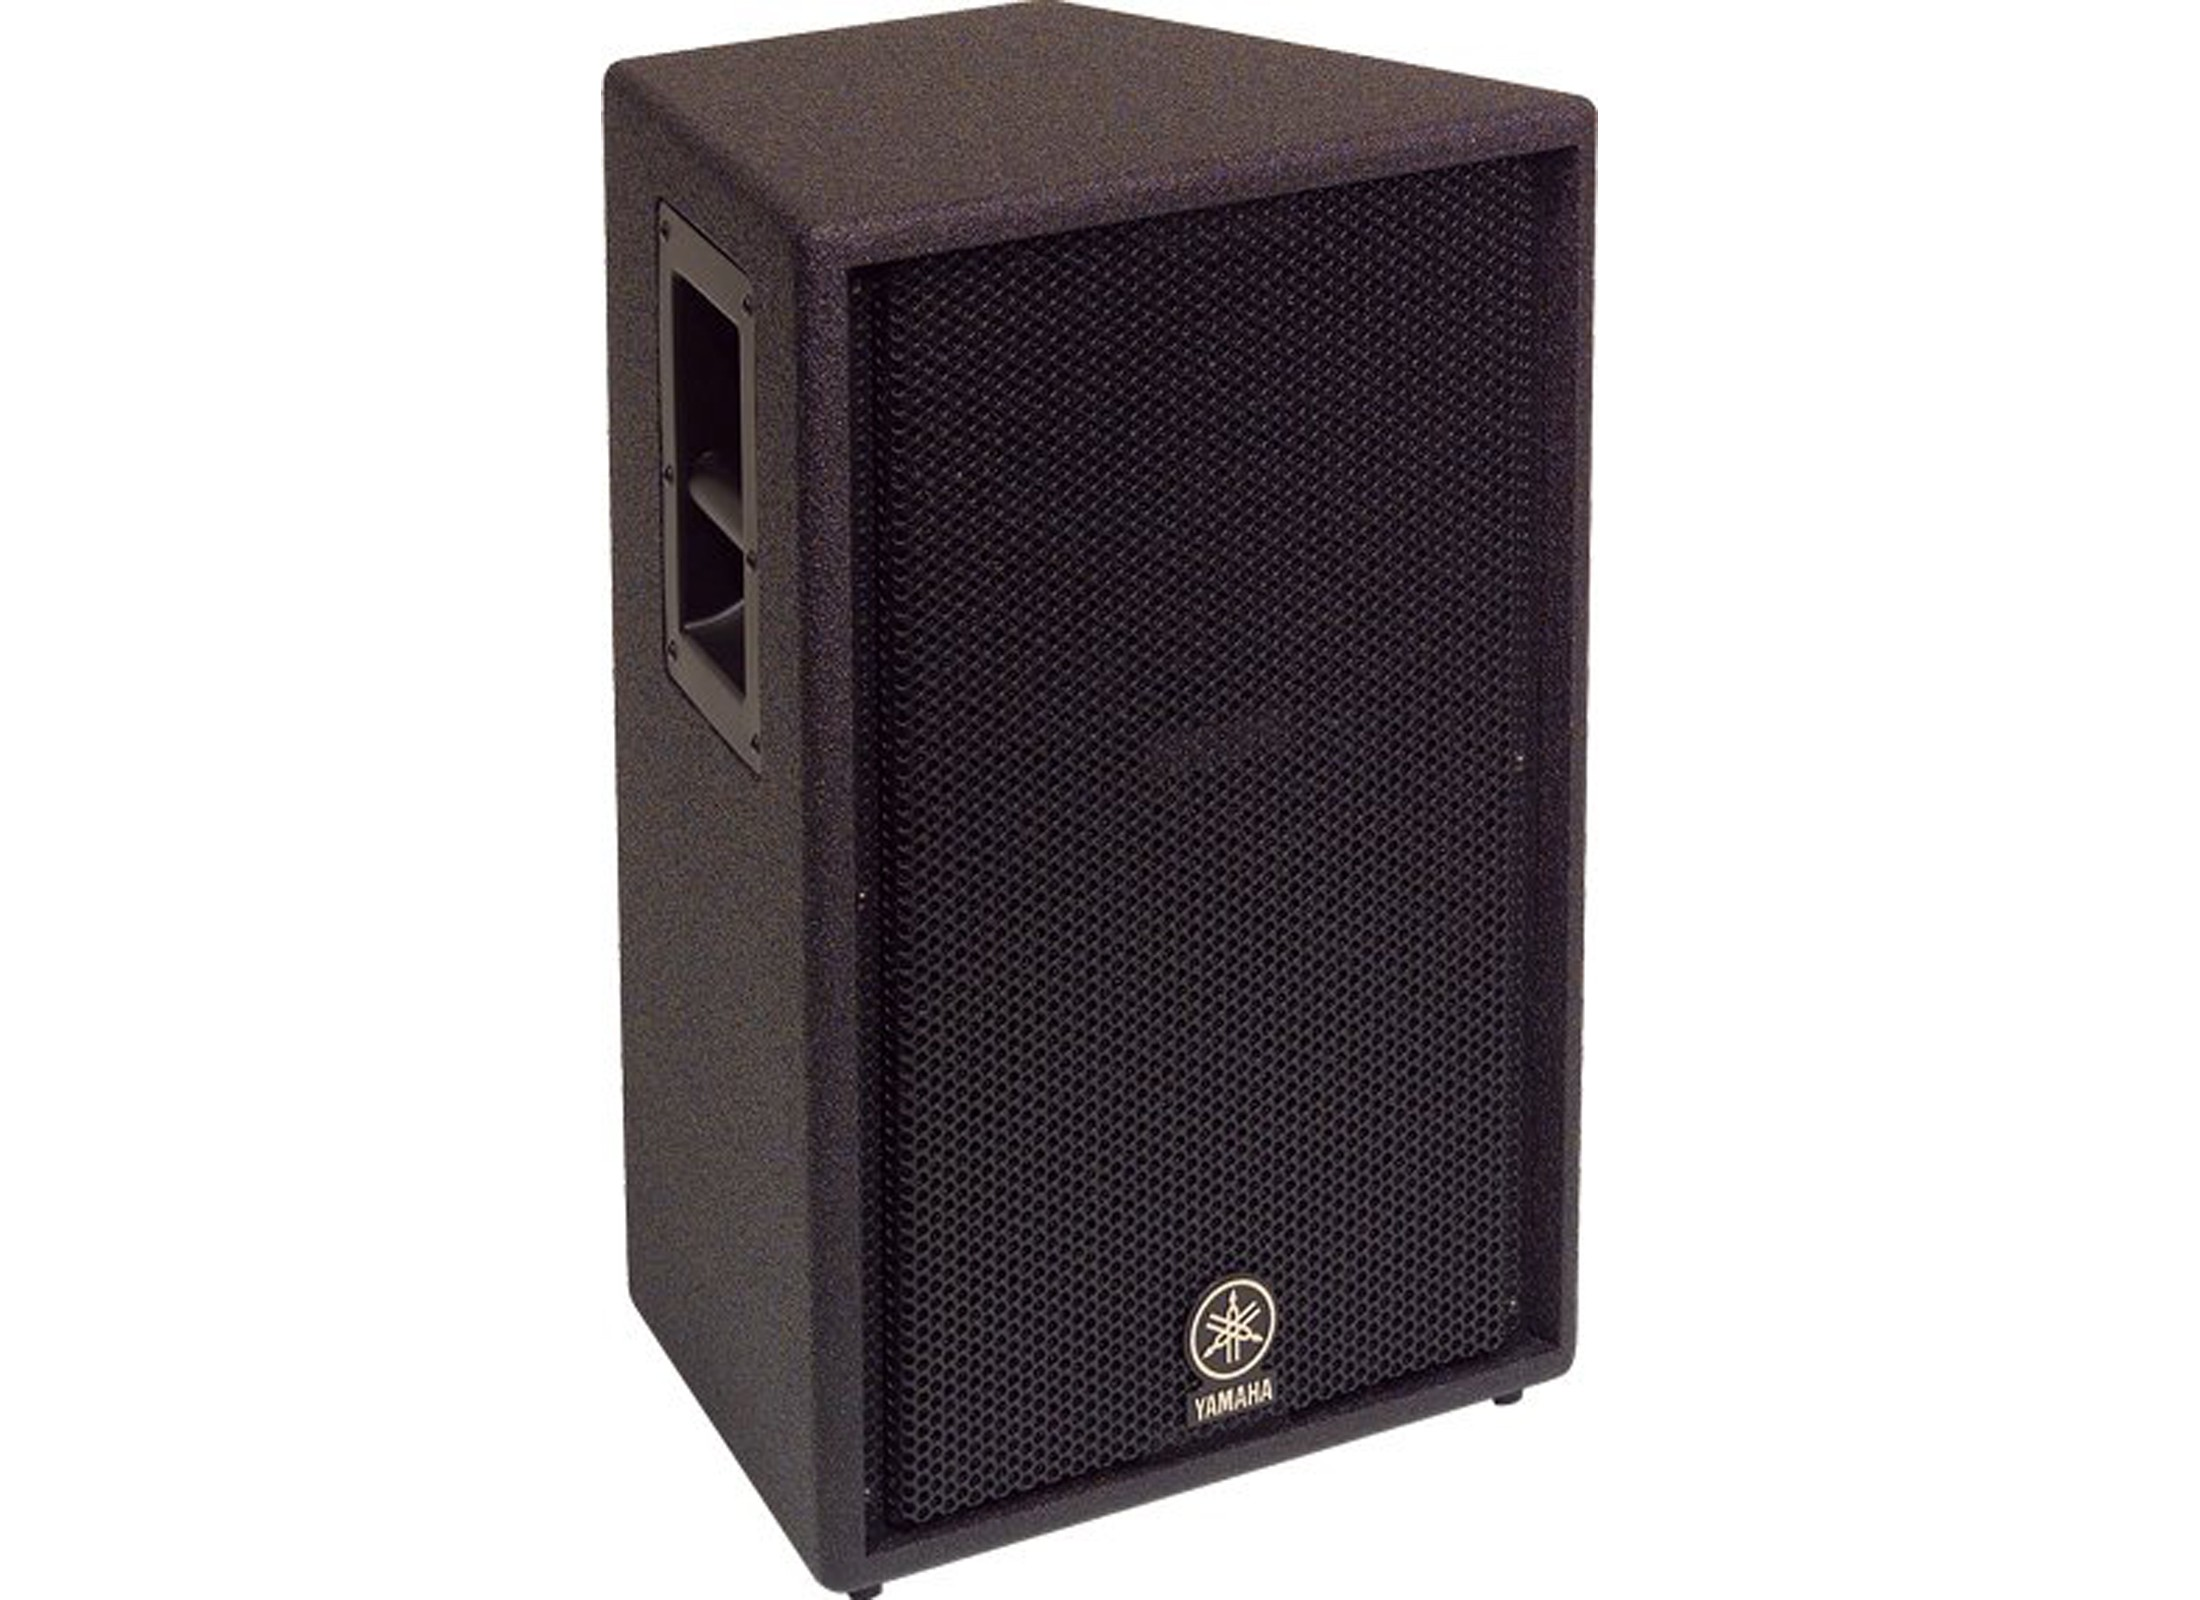 Yamaha c112v high mid speaker online at low prices at huss for Yamaha speakers price